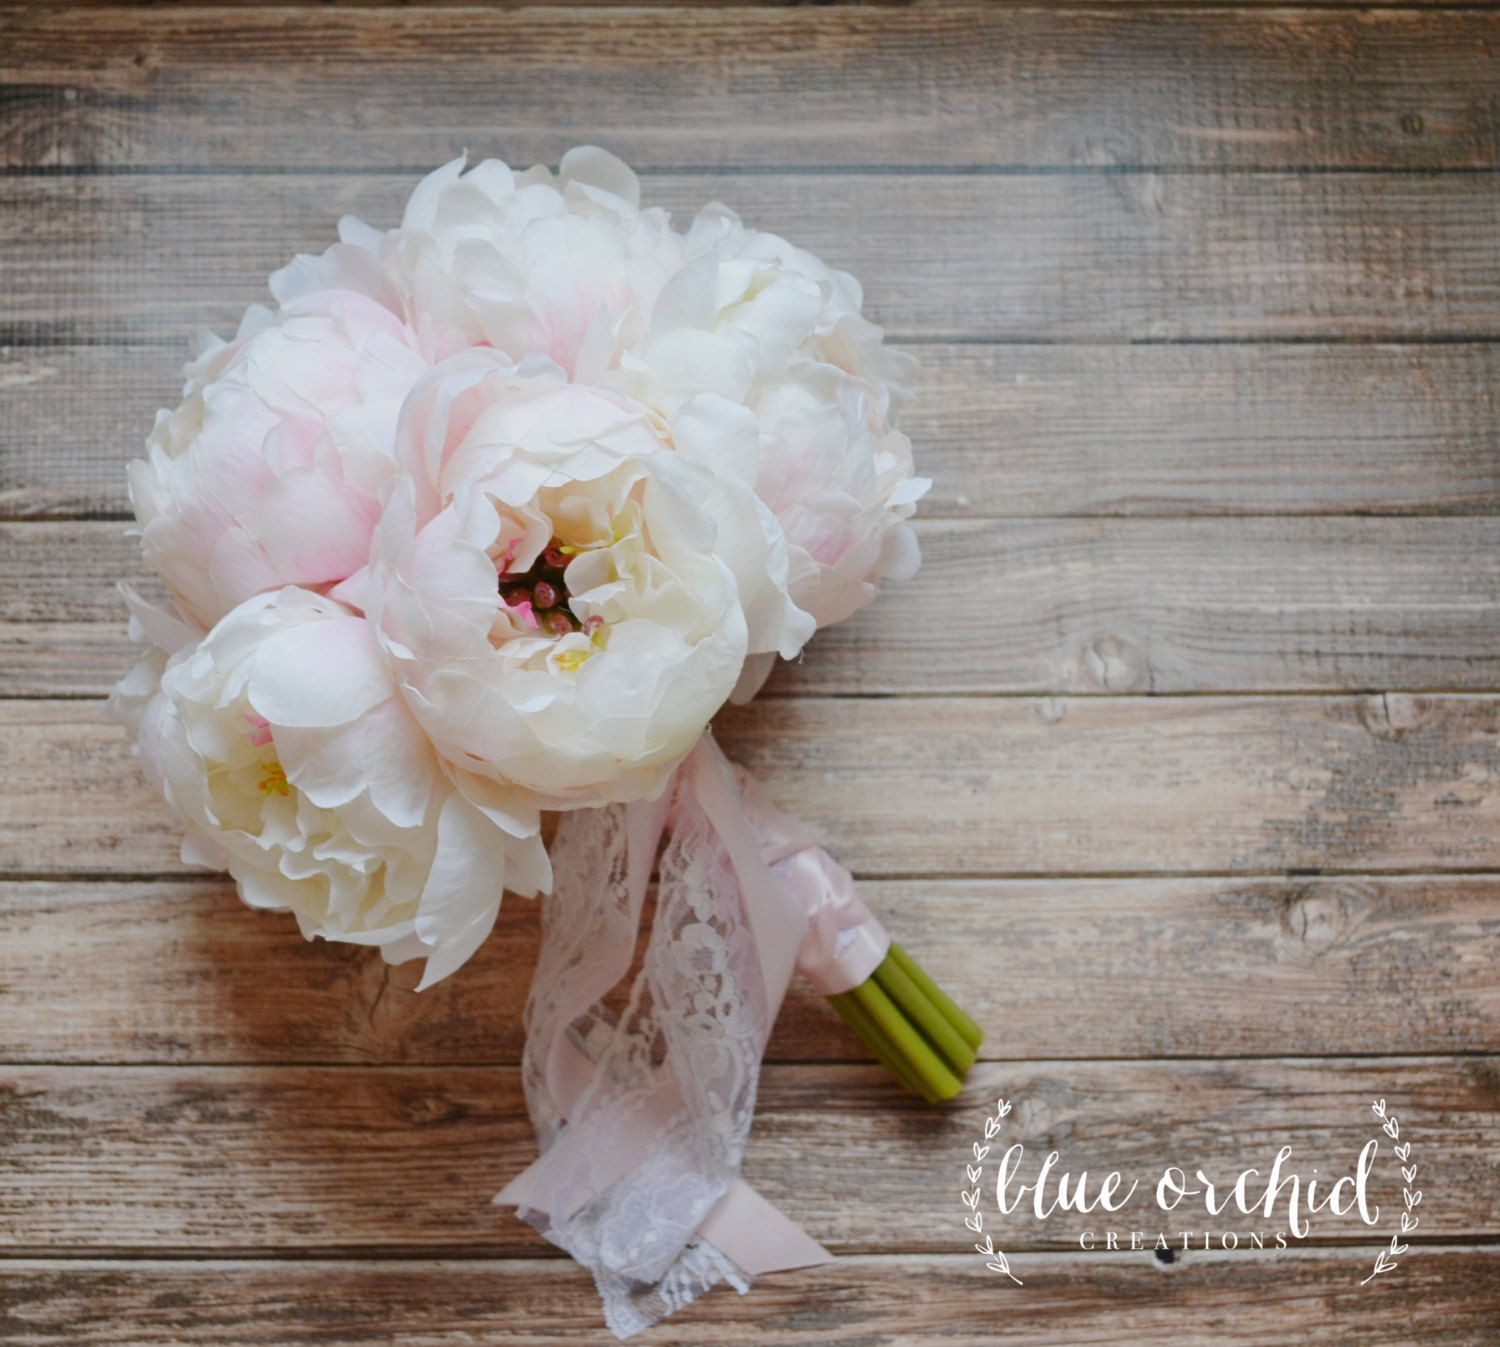 Wedding bouquet silk peonies silk wedding bouquet peony peony silk flower bouquet life like damascus rose posy silk peonies for bridesmaids bridal bouquet maid of honor 8 heads each bouquet 8 colors dhlflorist Images